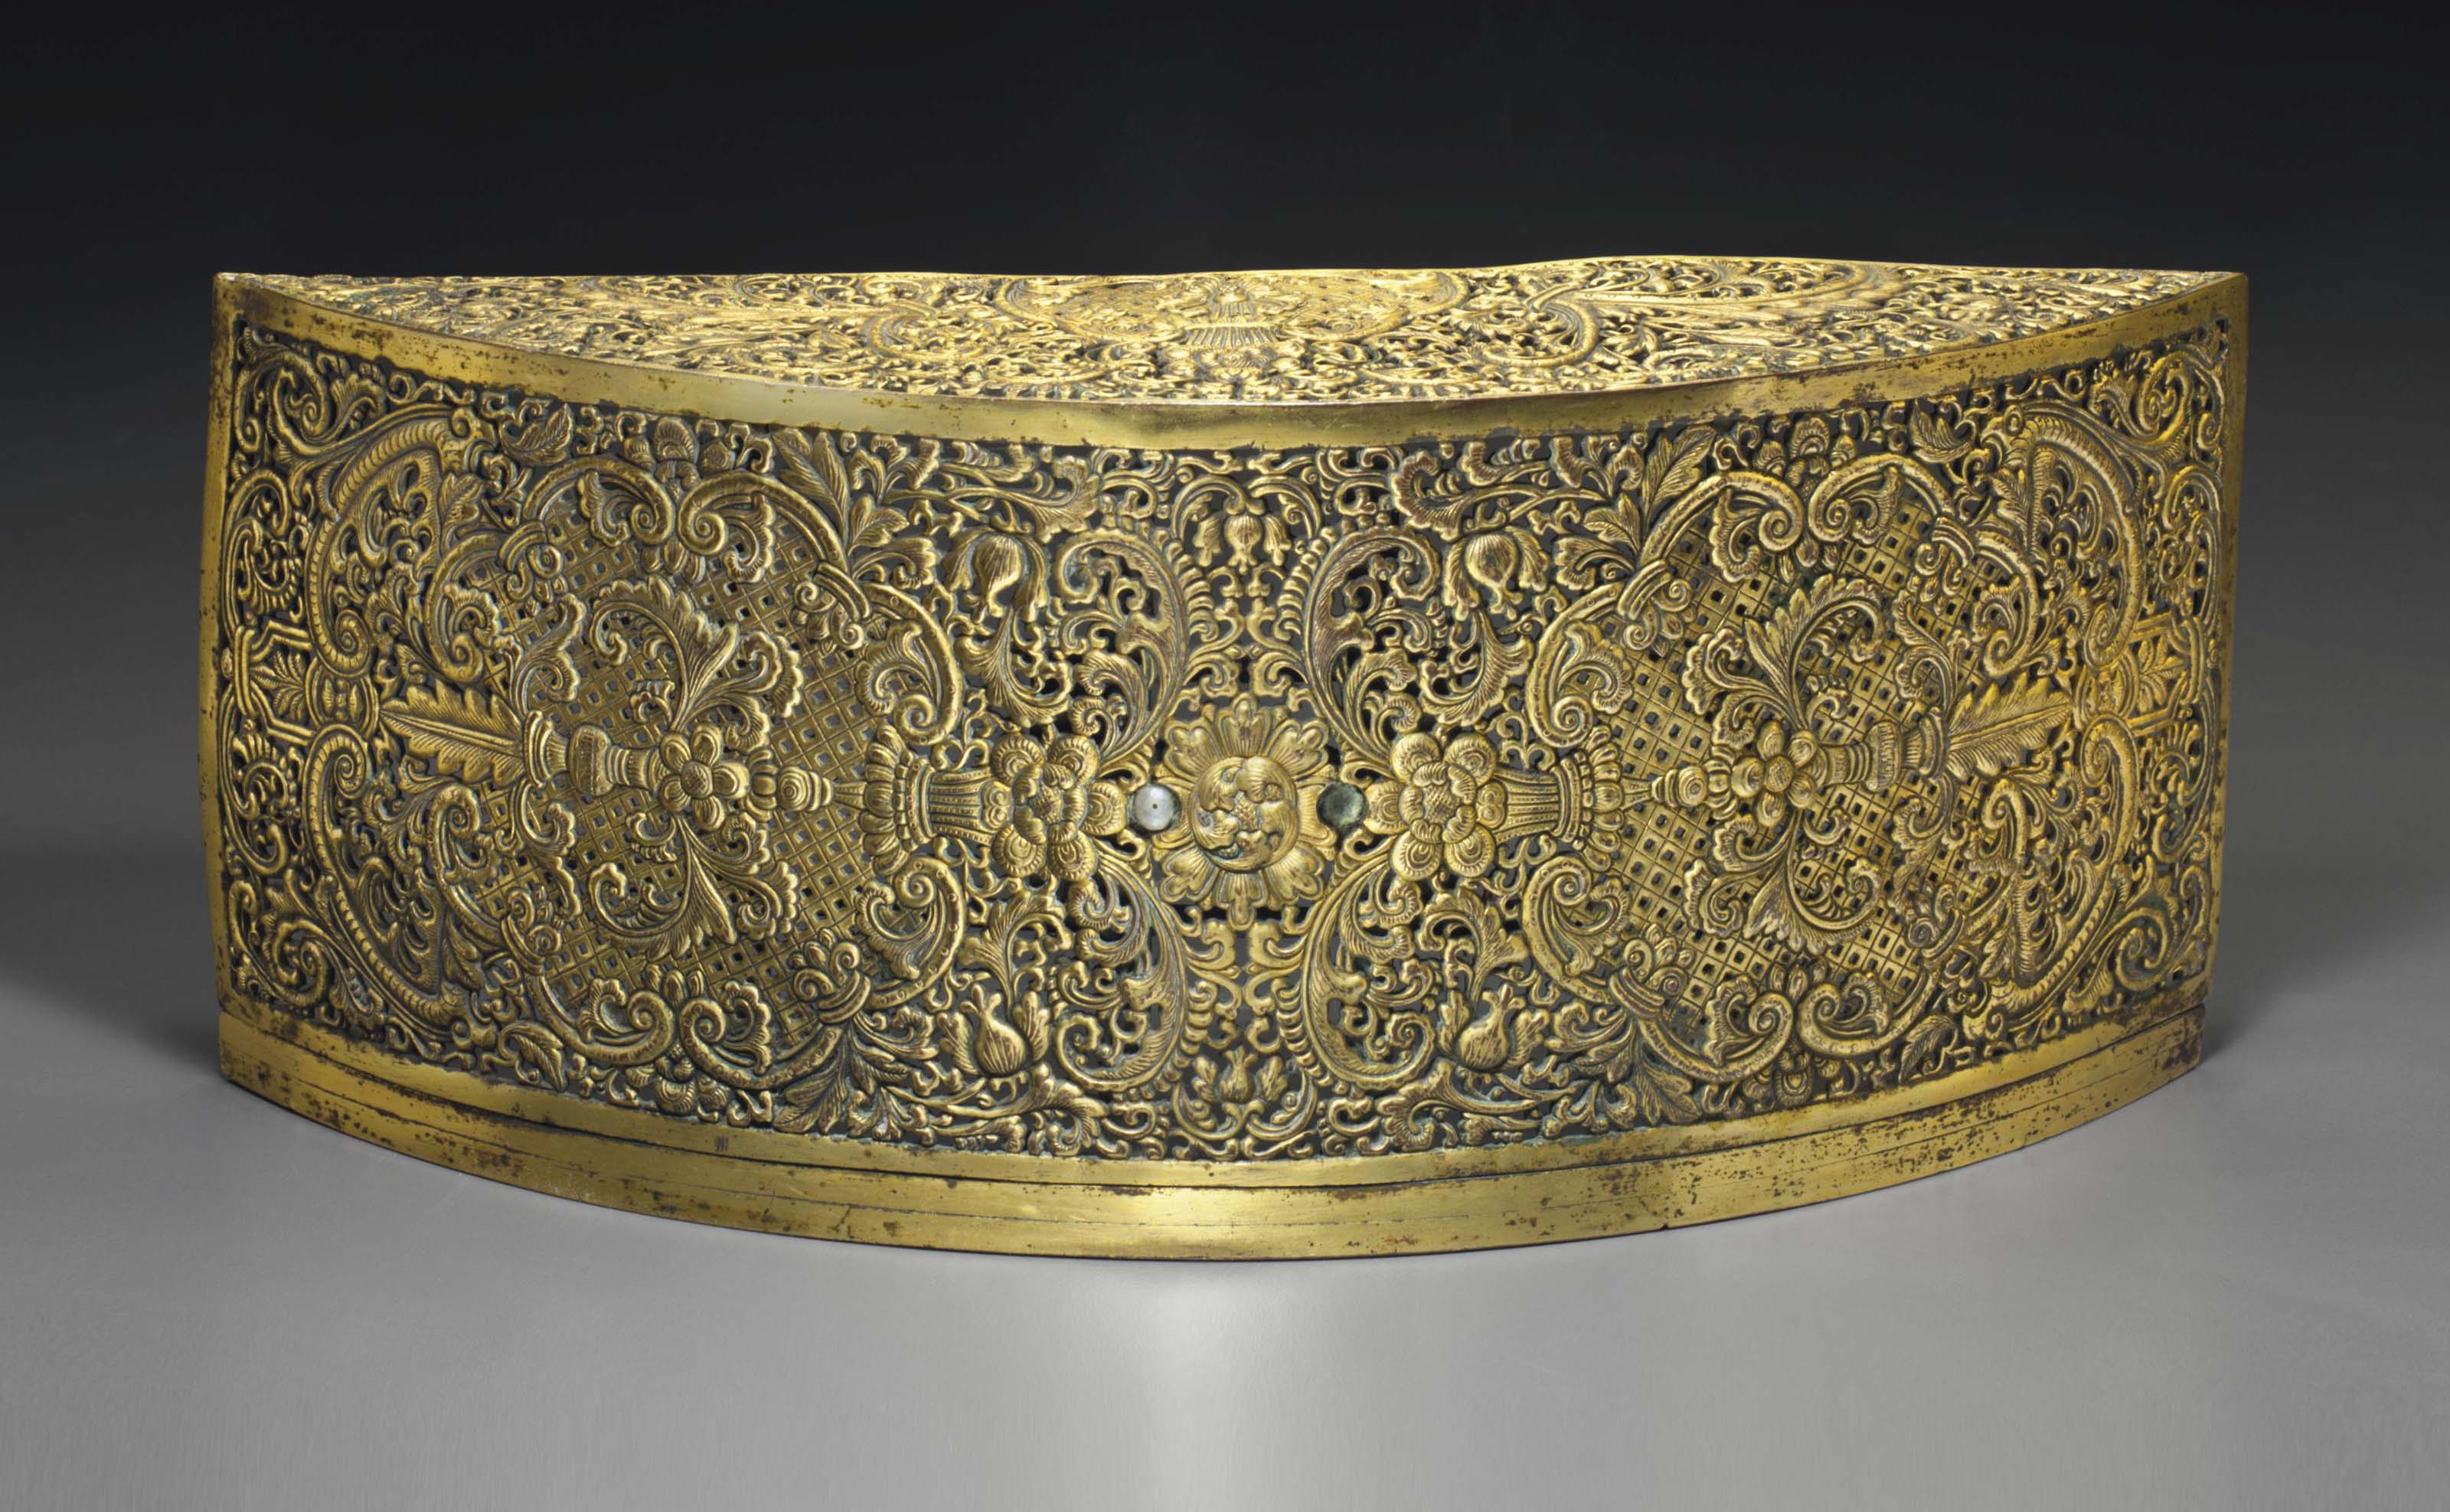 A GILT-BRONZE GILT-COPPER RETI